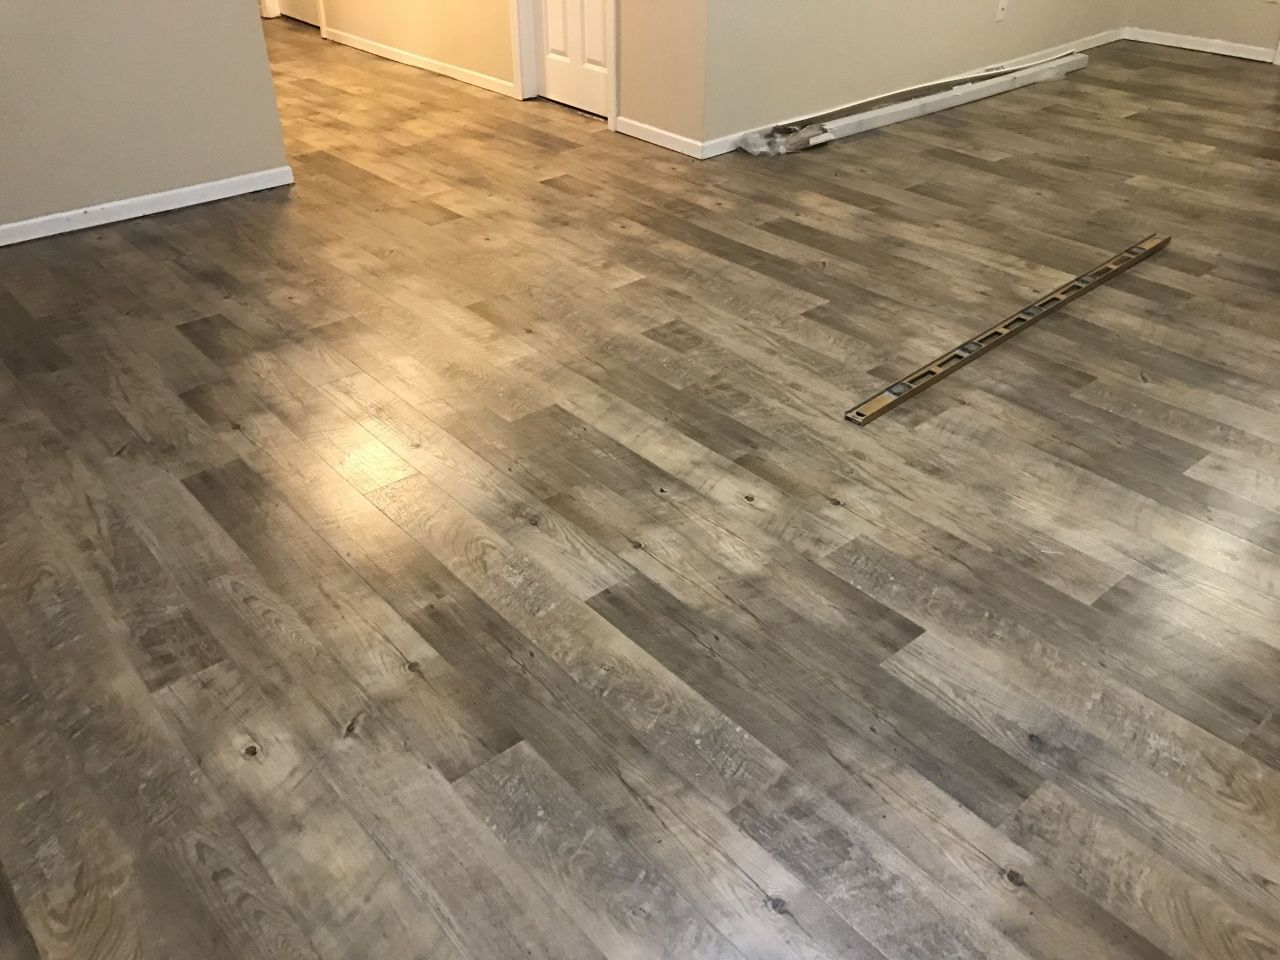 Best Vinyl Plank Flooring For Basement In 2020 Installing Vinyl Plank Flooring Luxury Vinyl Plank Vinyl Plank Flooring